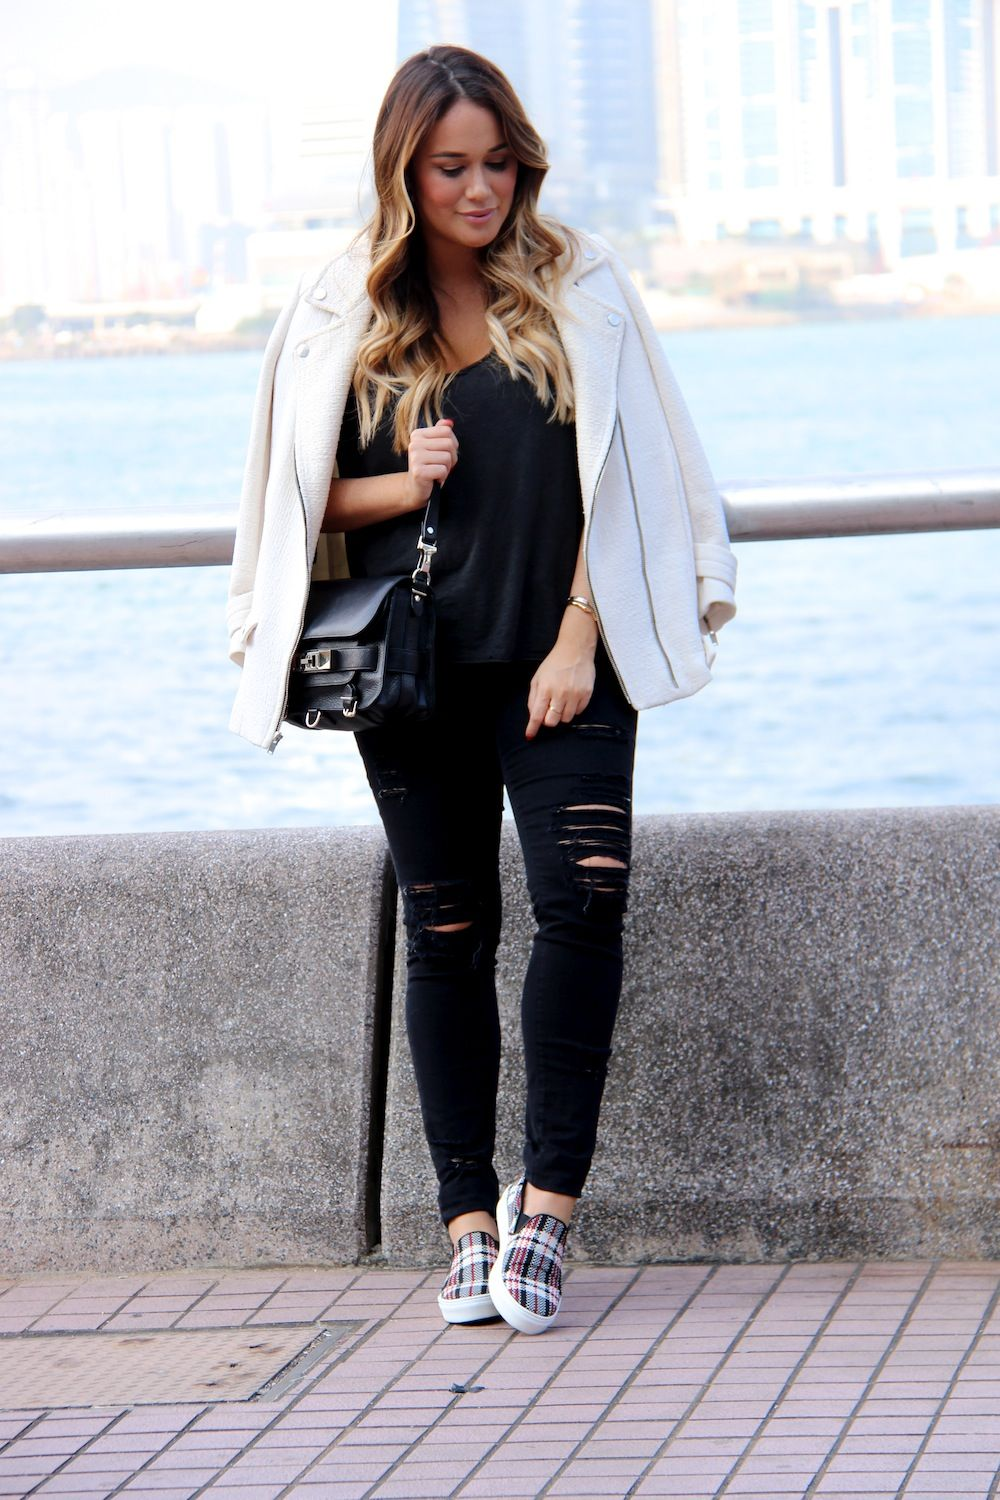 #fashion #outfit #blogger